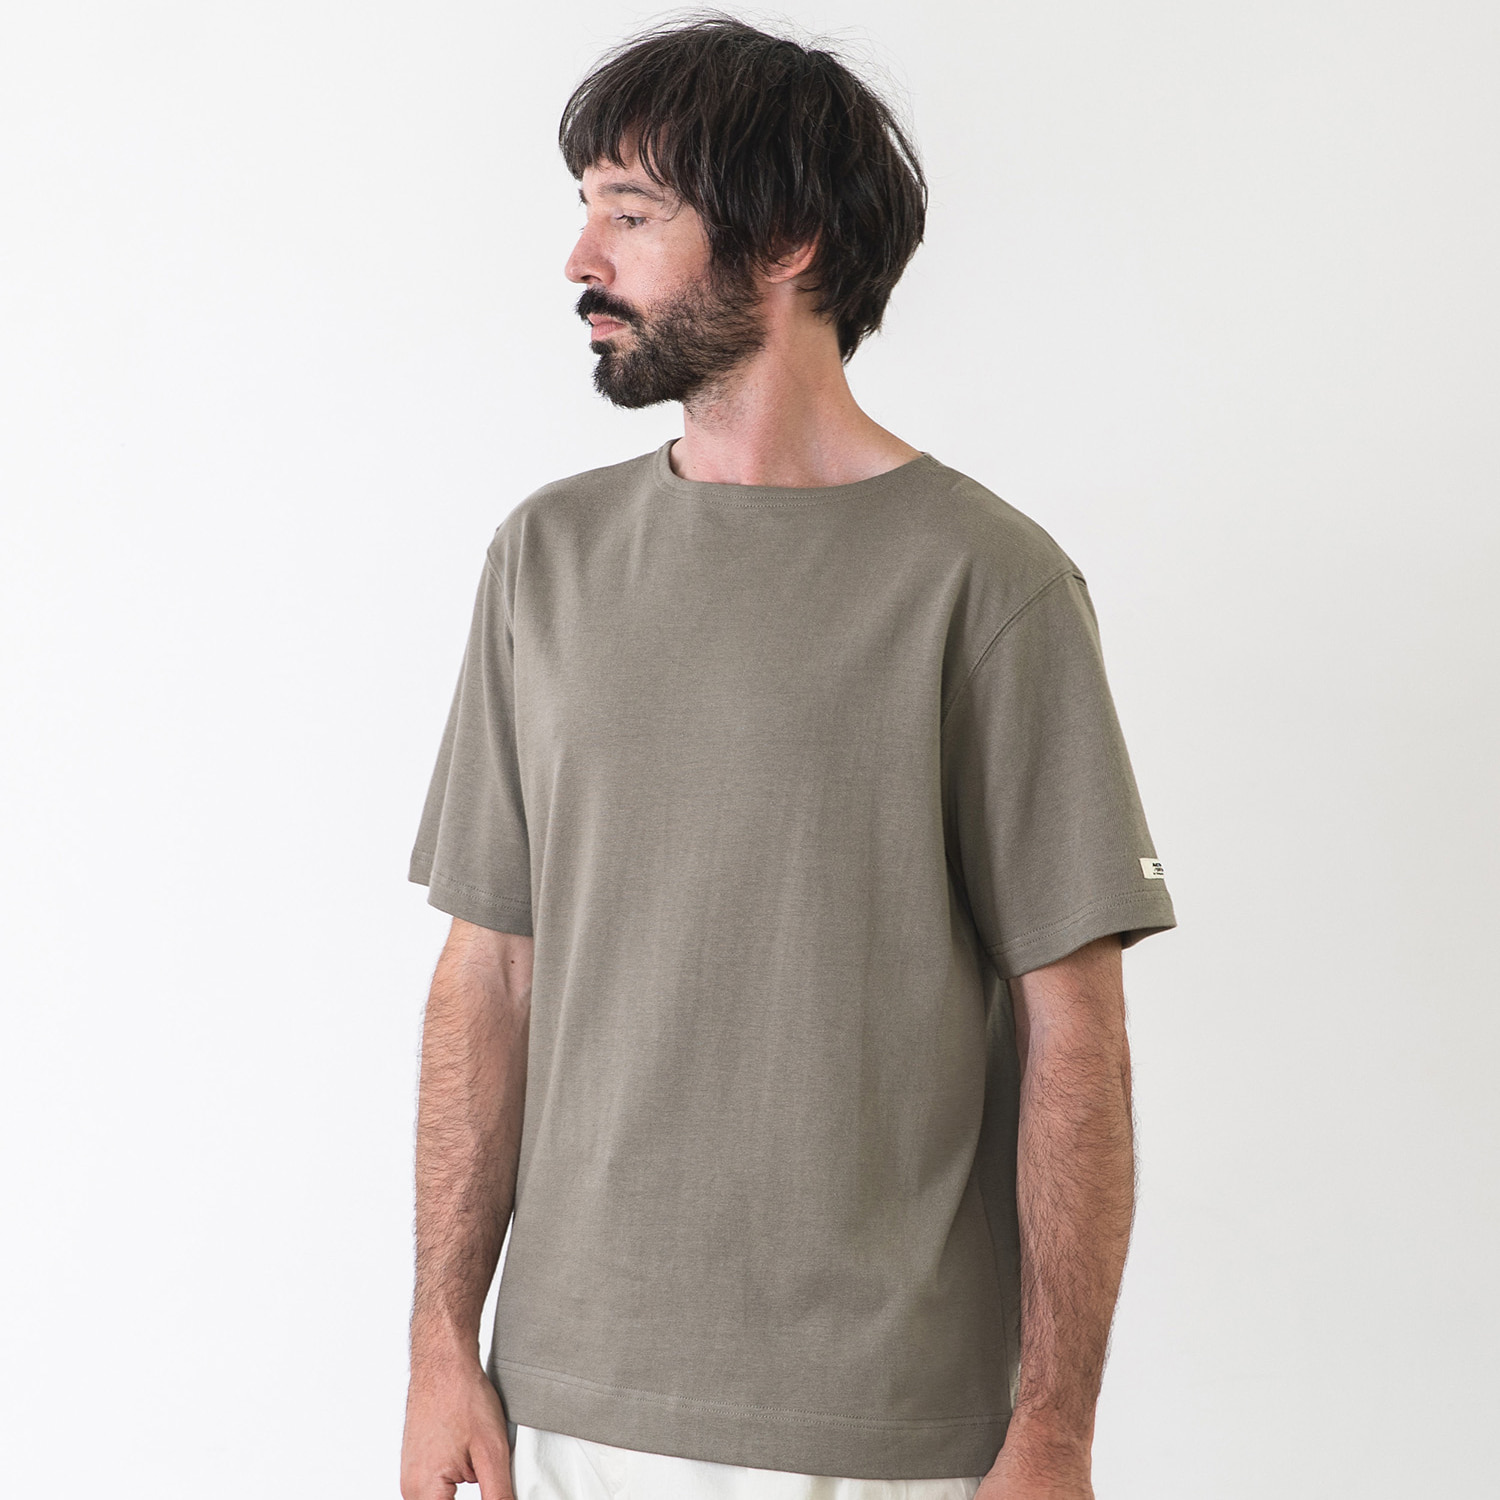 25% OFF_LIBRE PLAIN BASQUESHIRT (Concrete)